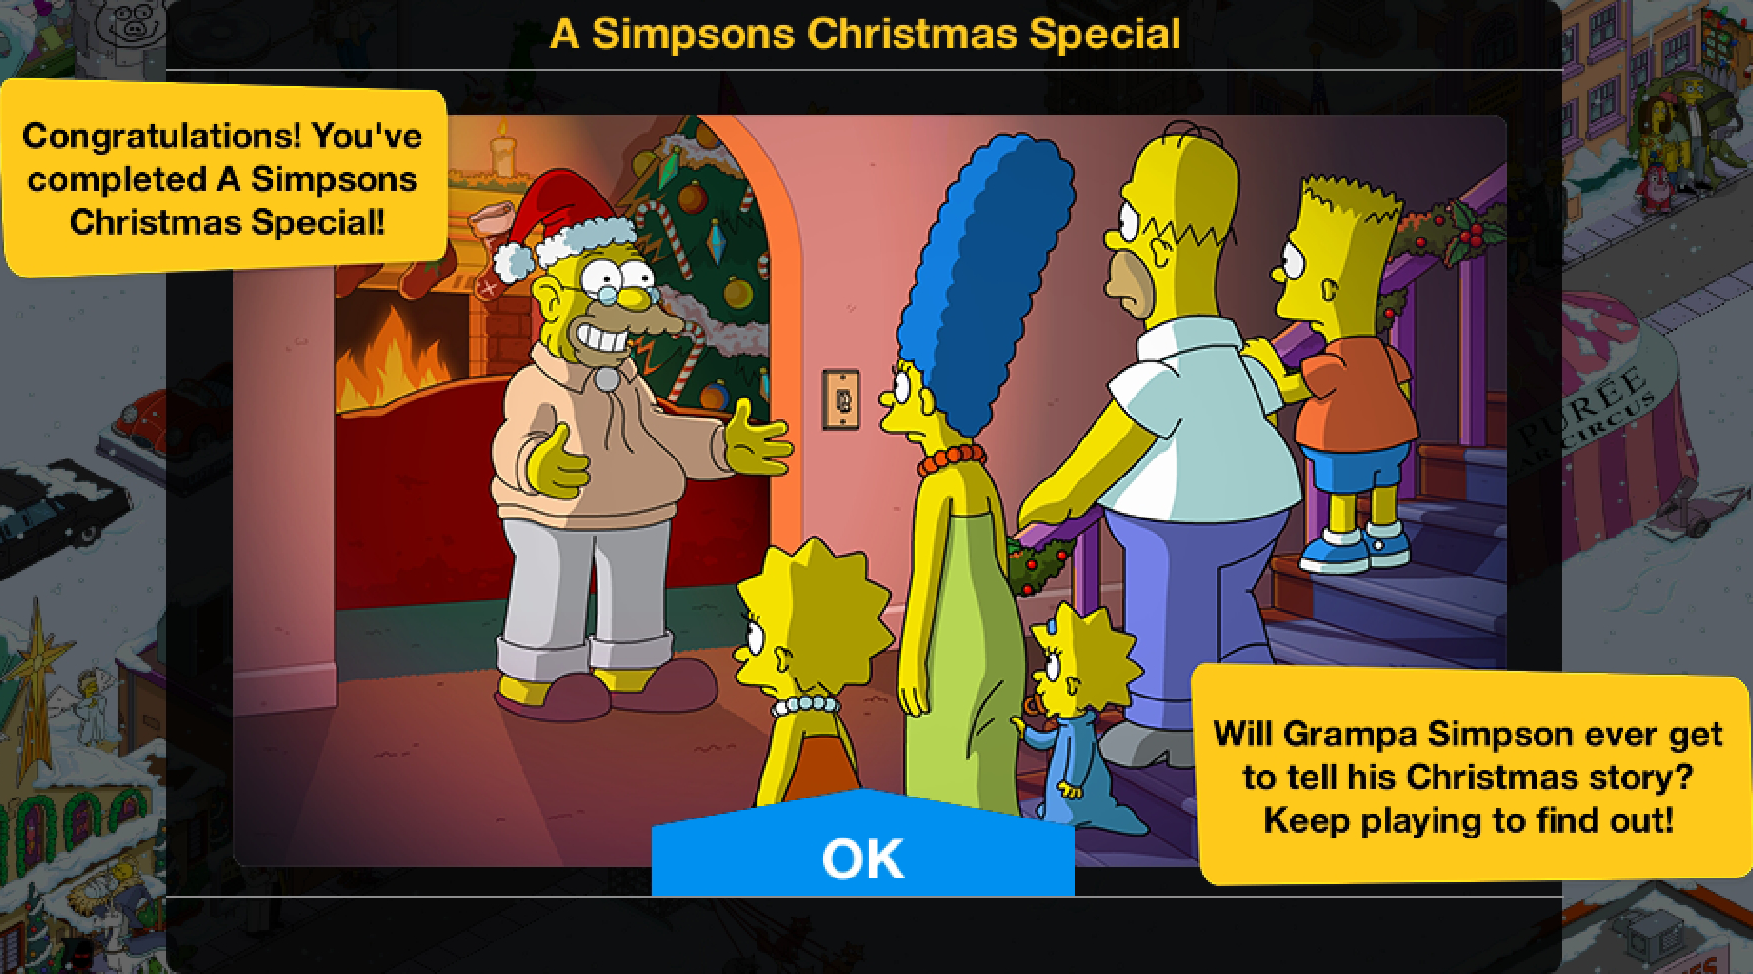 A Simpsons Christmas Special End Screen.png